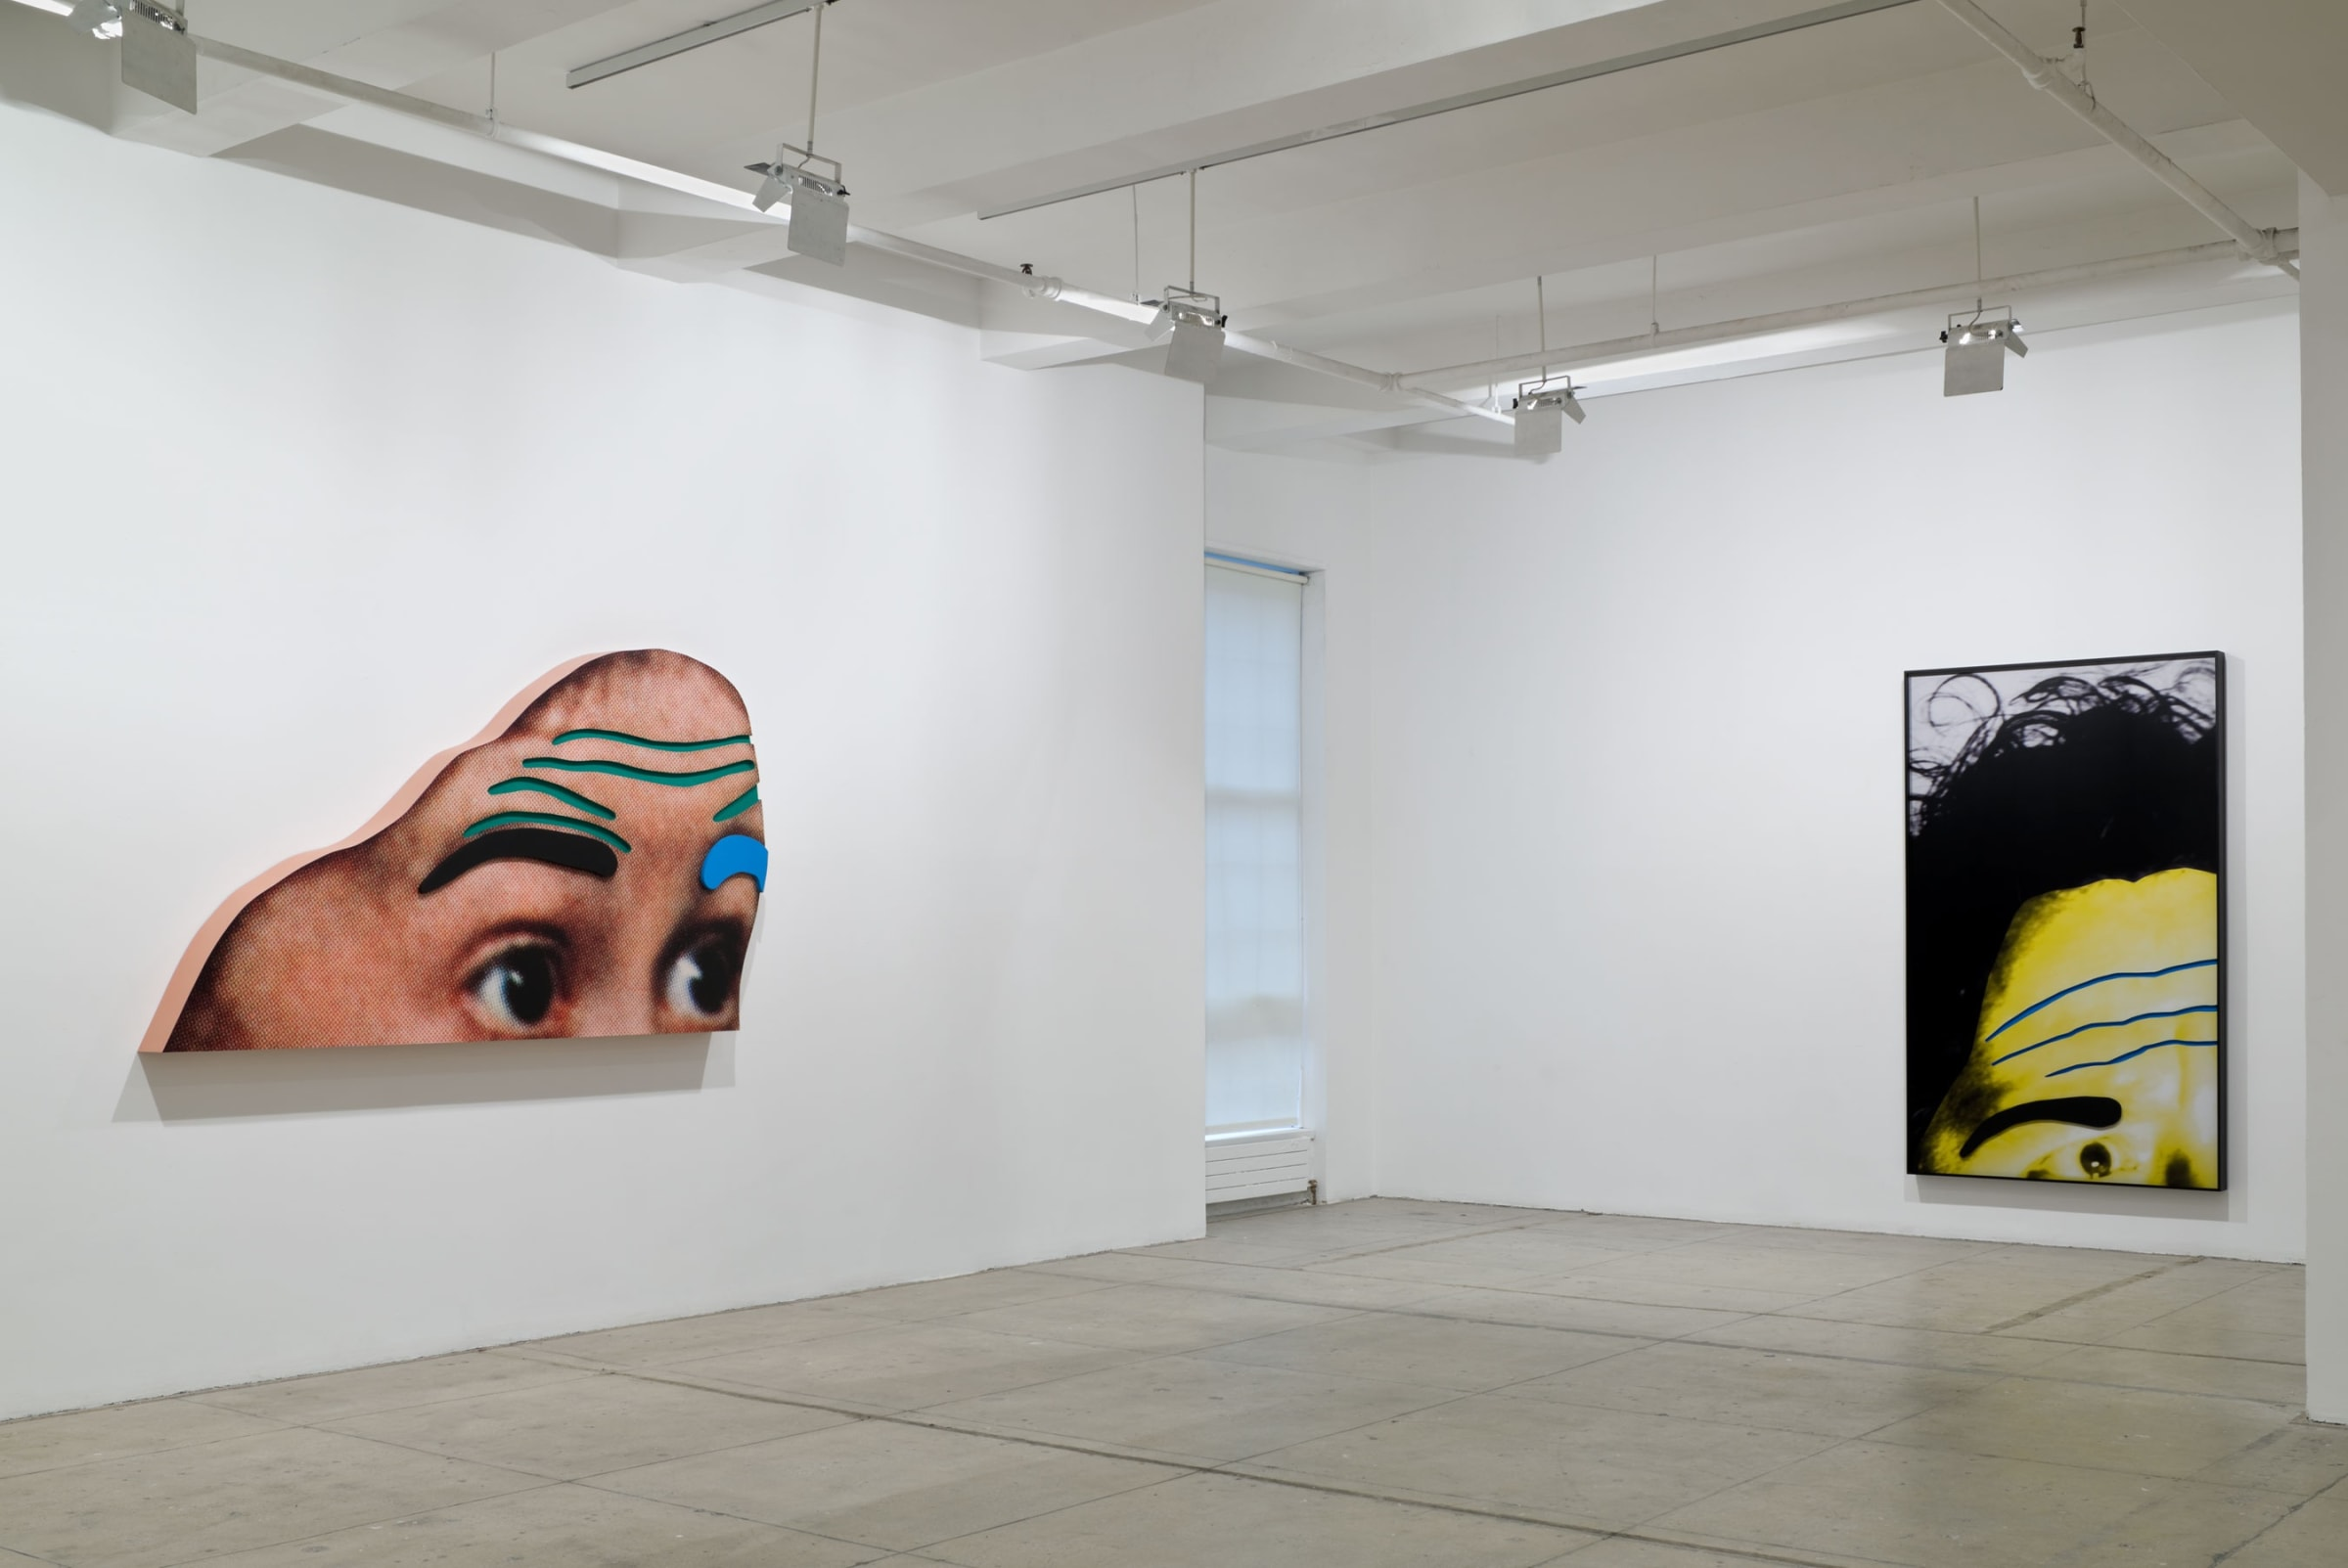 A large cut-out of eyes and a forehead on the left wall and a framed photograph of the top left half of a yellow face are marked with colors to exaggerate the foreheads and eyebrows.